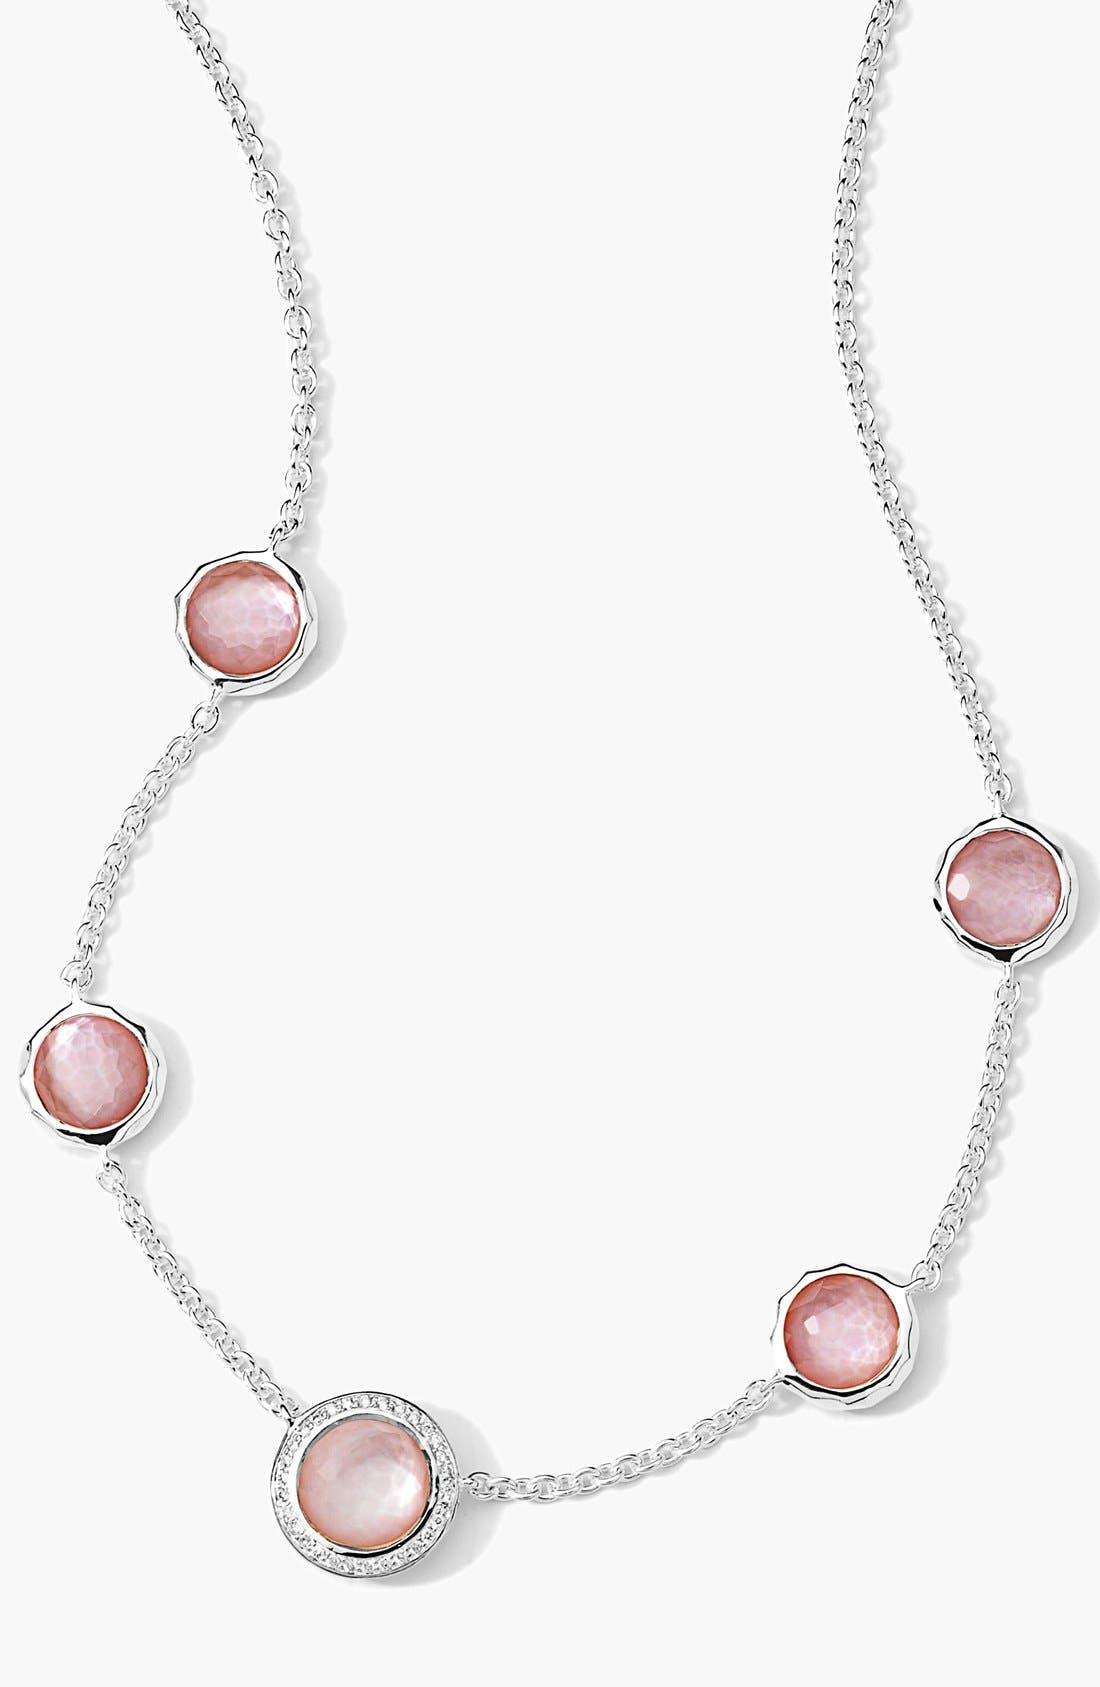 Alternate Image 1 Selected - Ippolita 'Stella' Diamond & Doublet Station Necklace